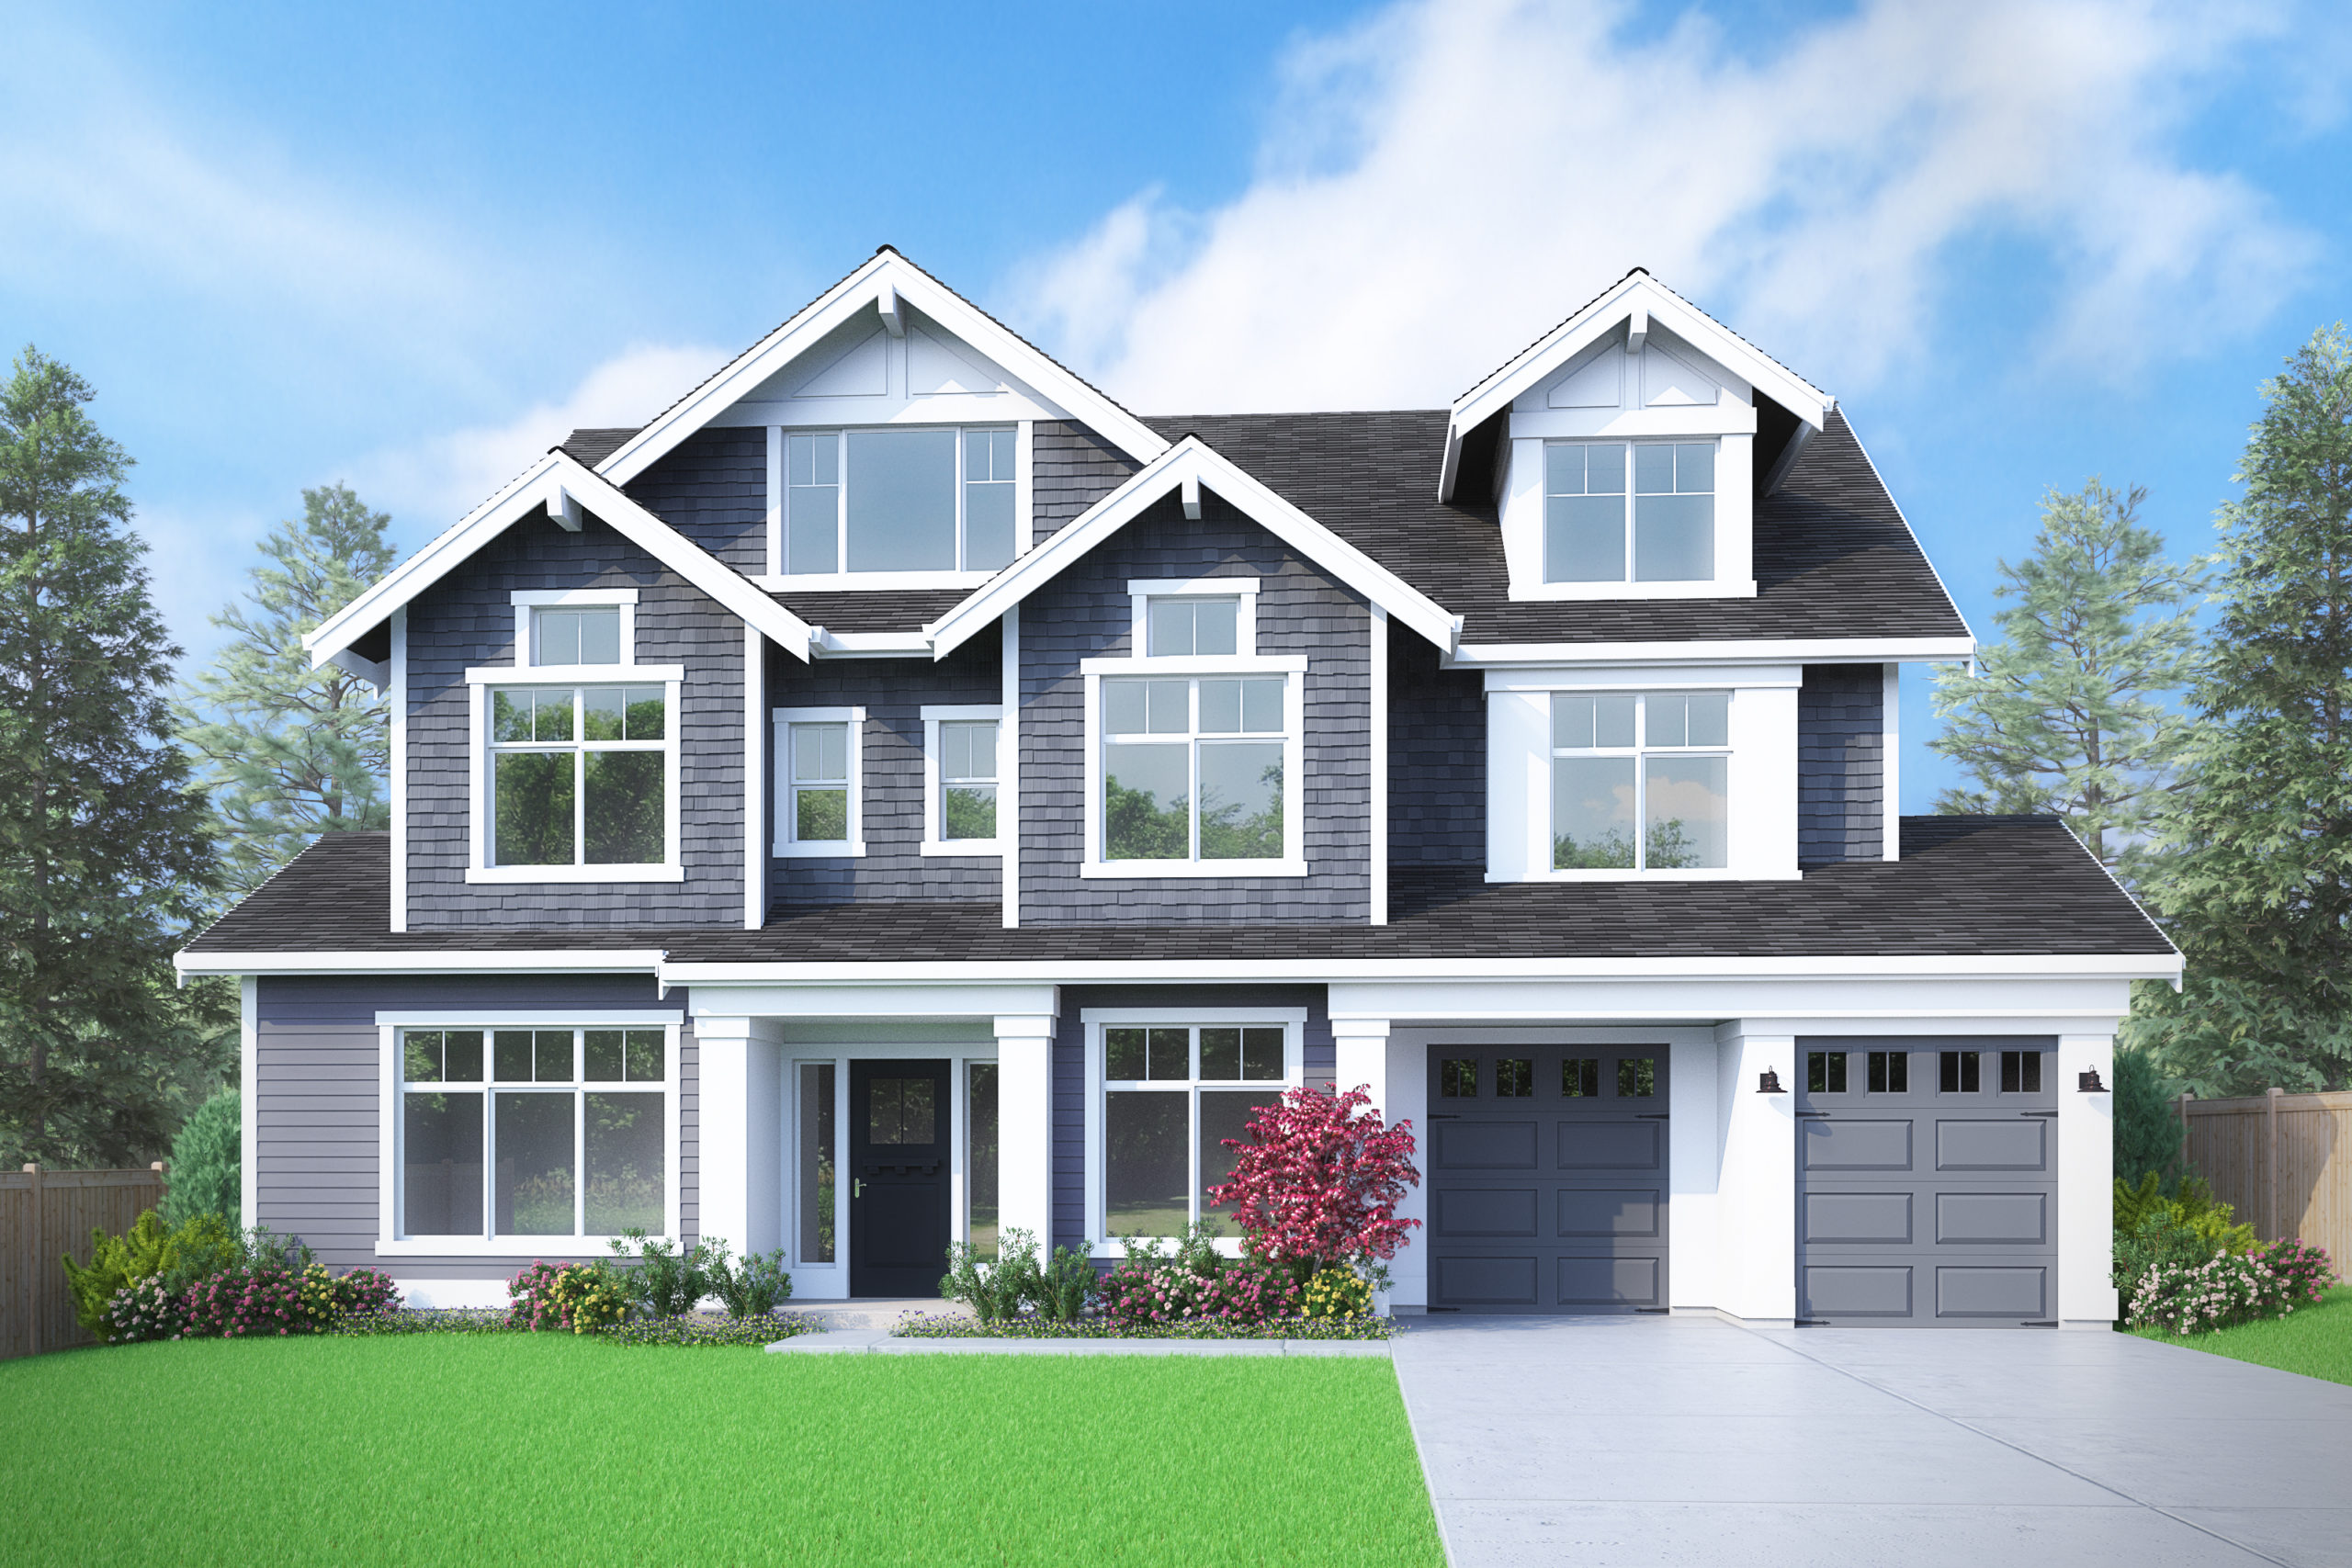 View our new luxury home construction on 10604 NE 28th Pl, in Bellevue, WA from MN Custom Homes